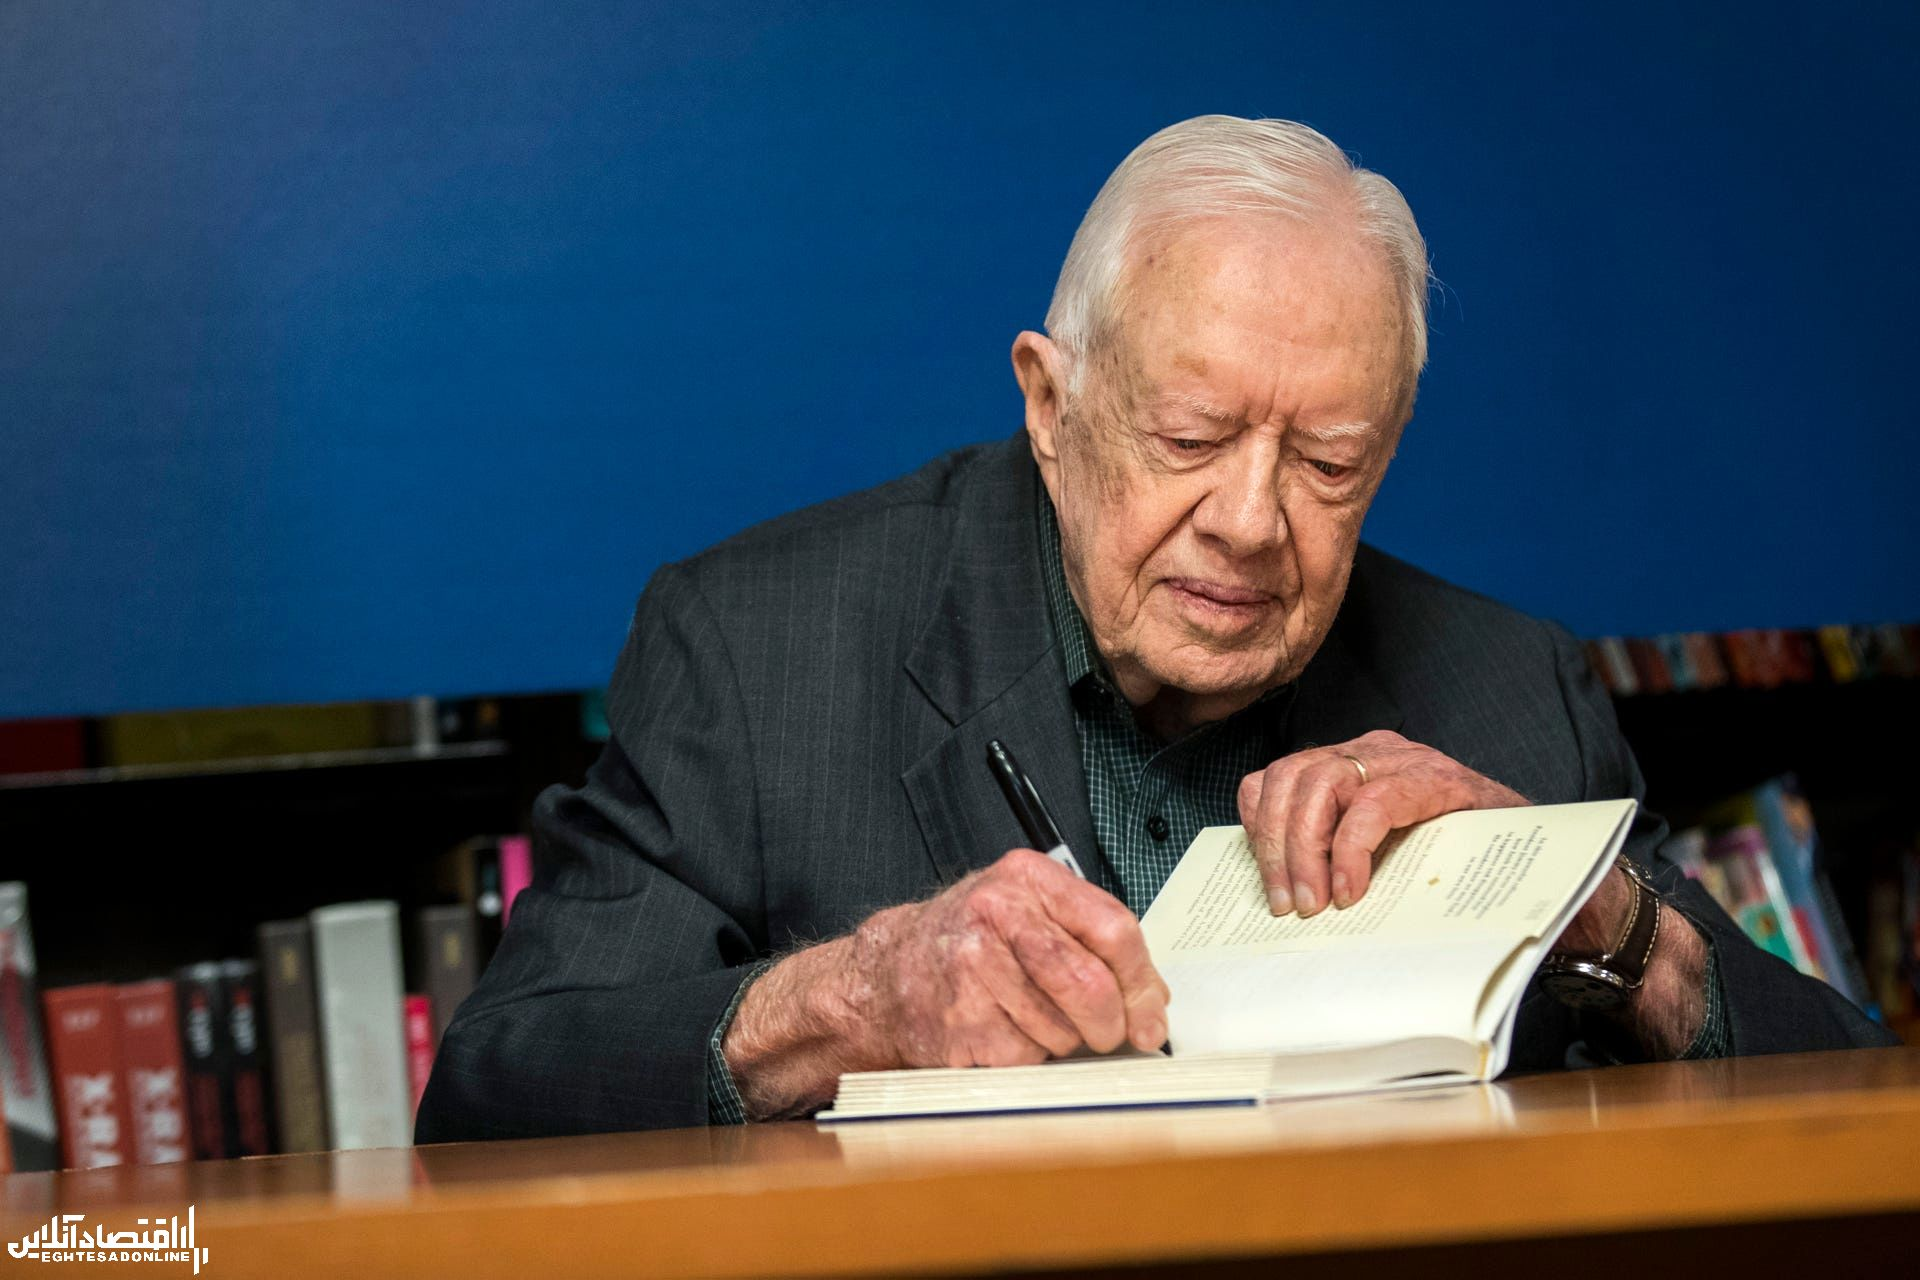 Jimmy Carter turns 95. His life in pictures